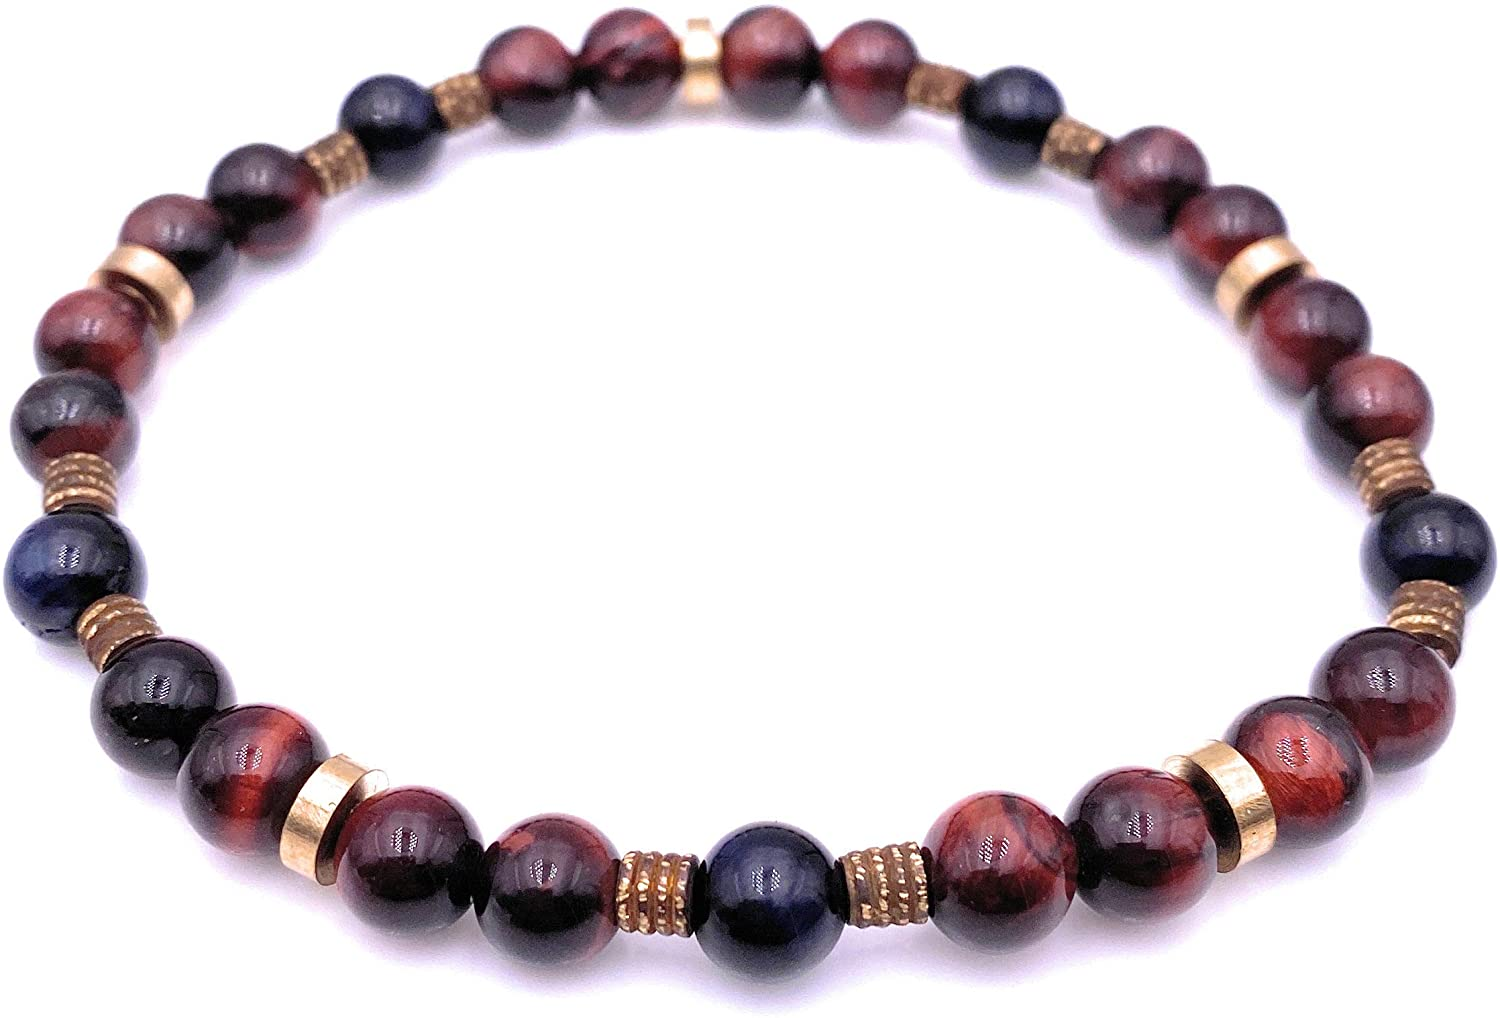 Men Good Luck Stone Beaded Stretch Bracelet - Red / Blue - Dispelling Fear and Anxiety